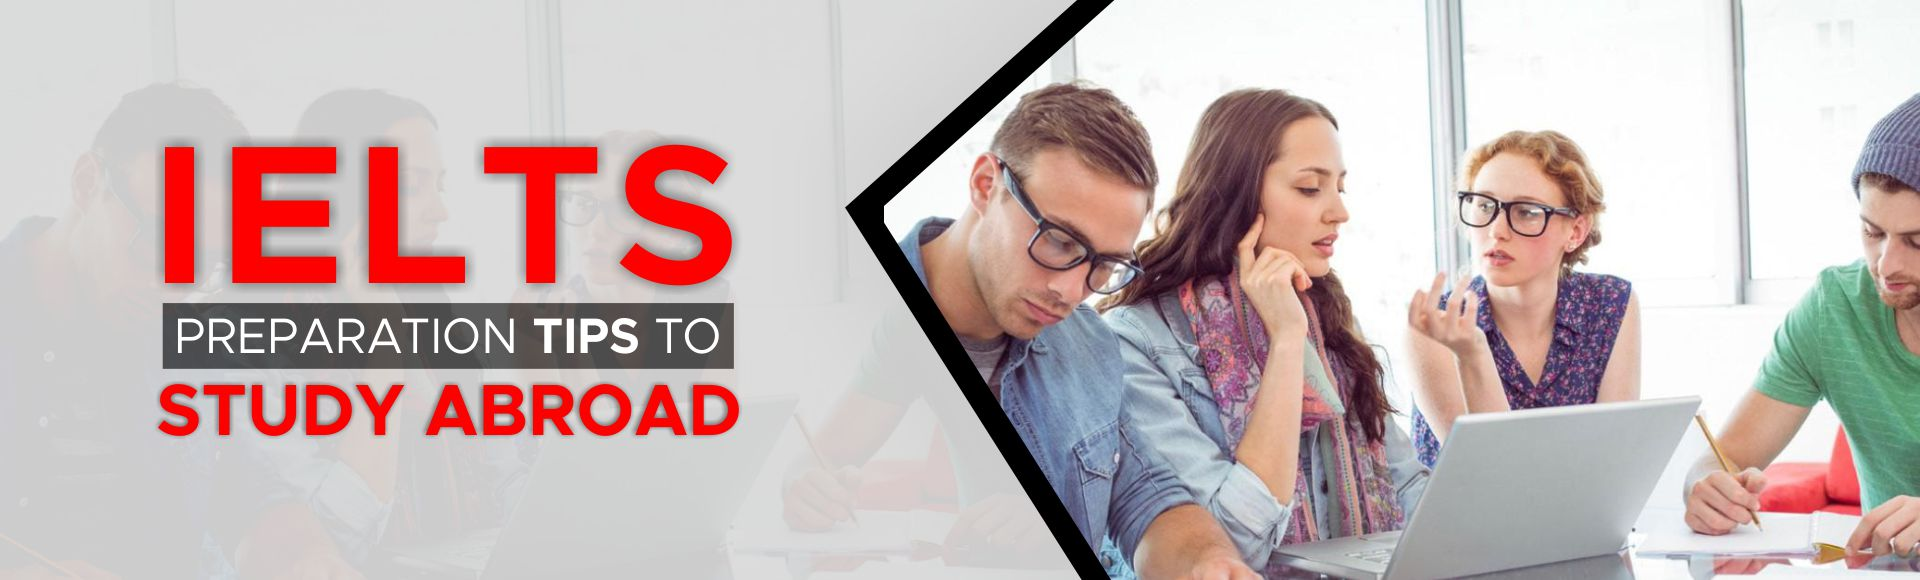 IELTS Preparation Tips to Study Abroad